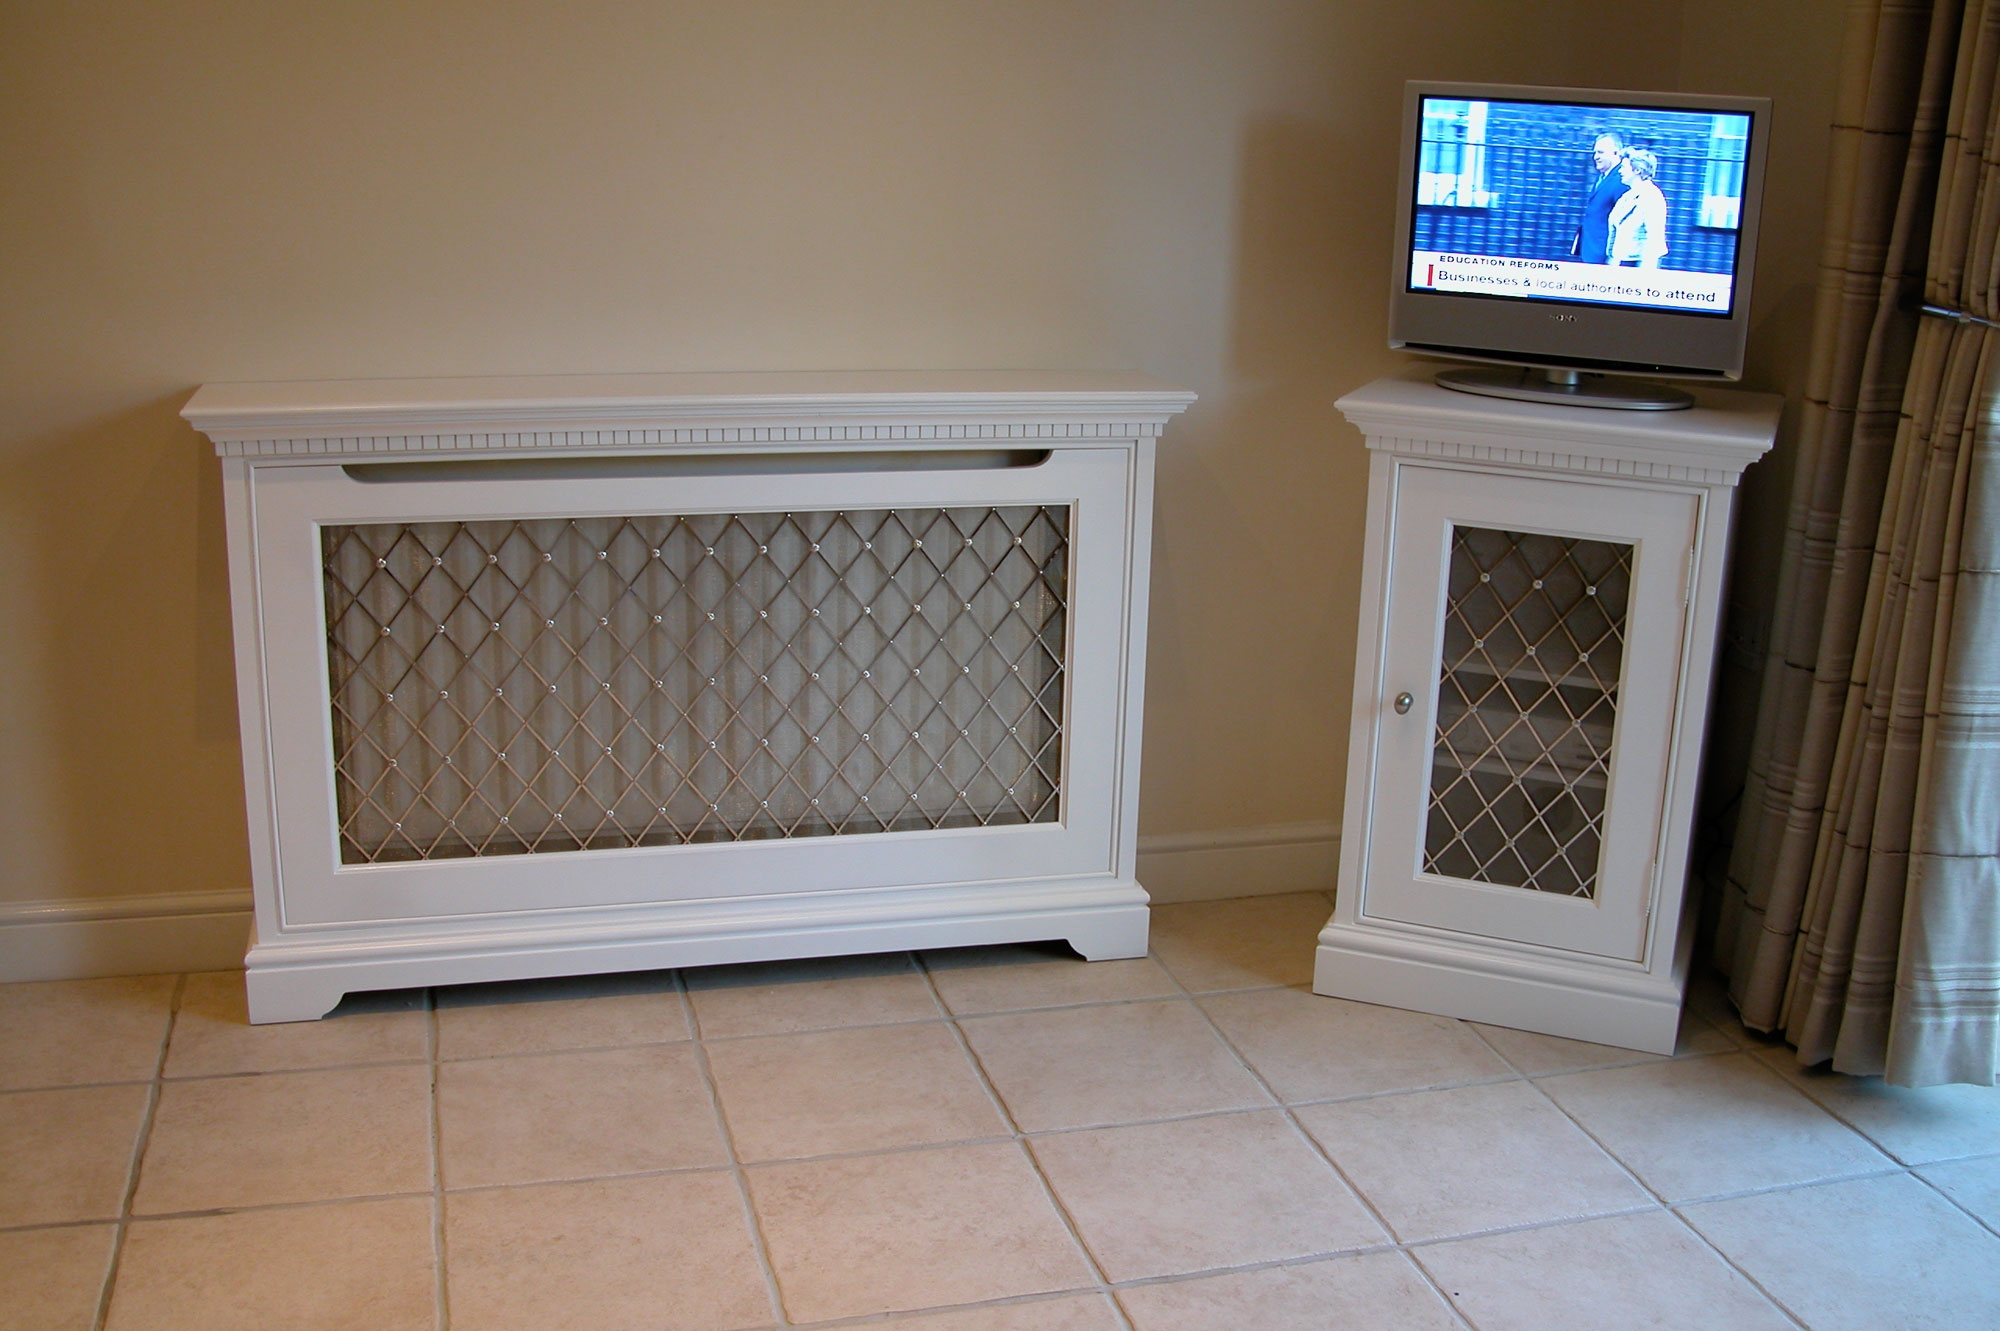 Bespoke Tv Cabinets Custom Made Tv Cabinets Pertaining To Bespoke Tv Cabinets (Image 5 of 15)